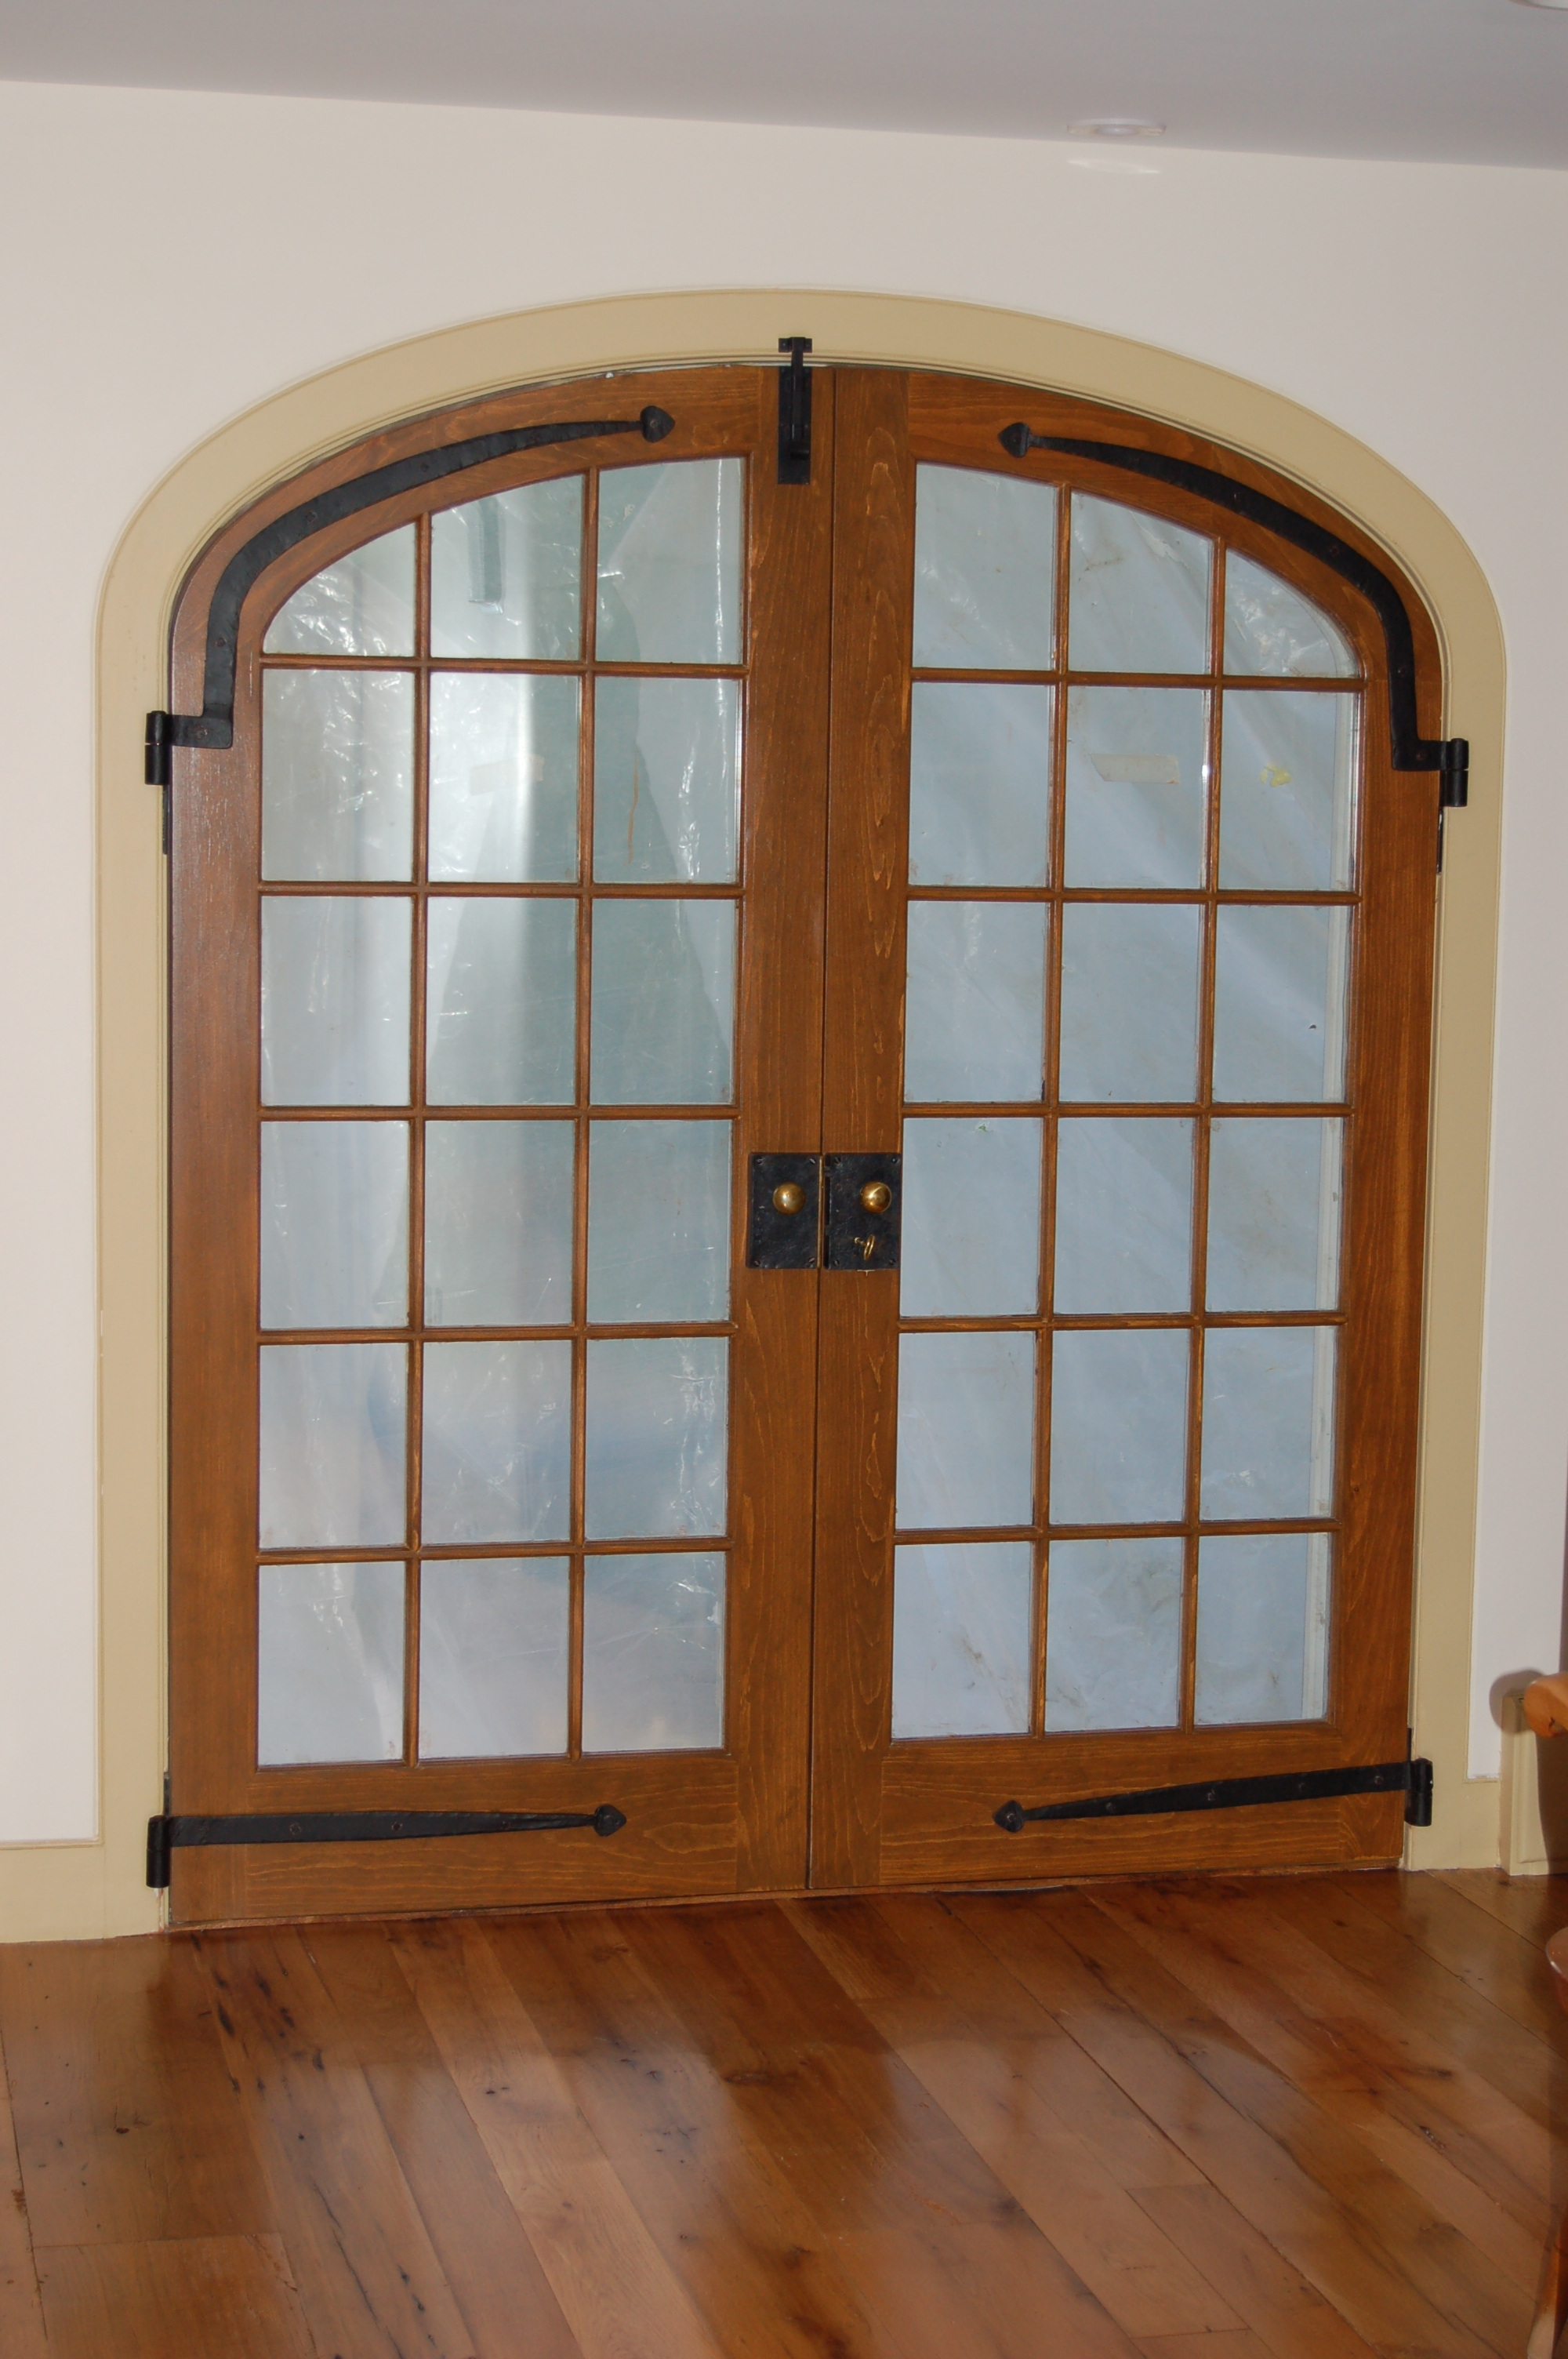 most house doorl double manufacturers fiberglass door panel exterior doorsi blinds buy best doors new matchless entrance entry to steel place lowes glass front with doori